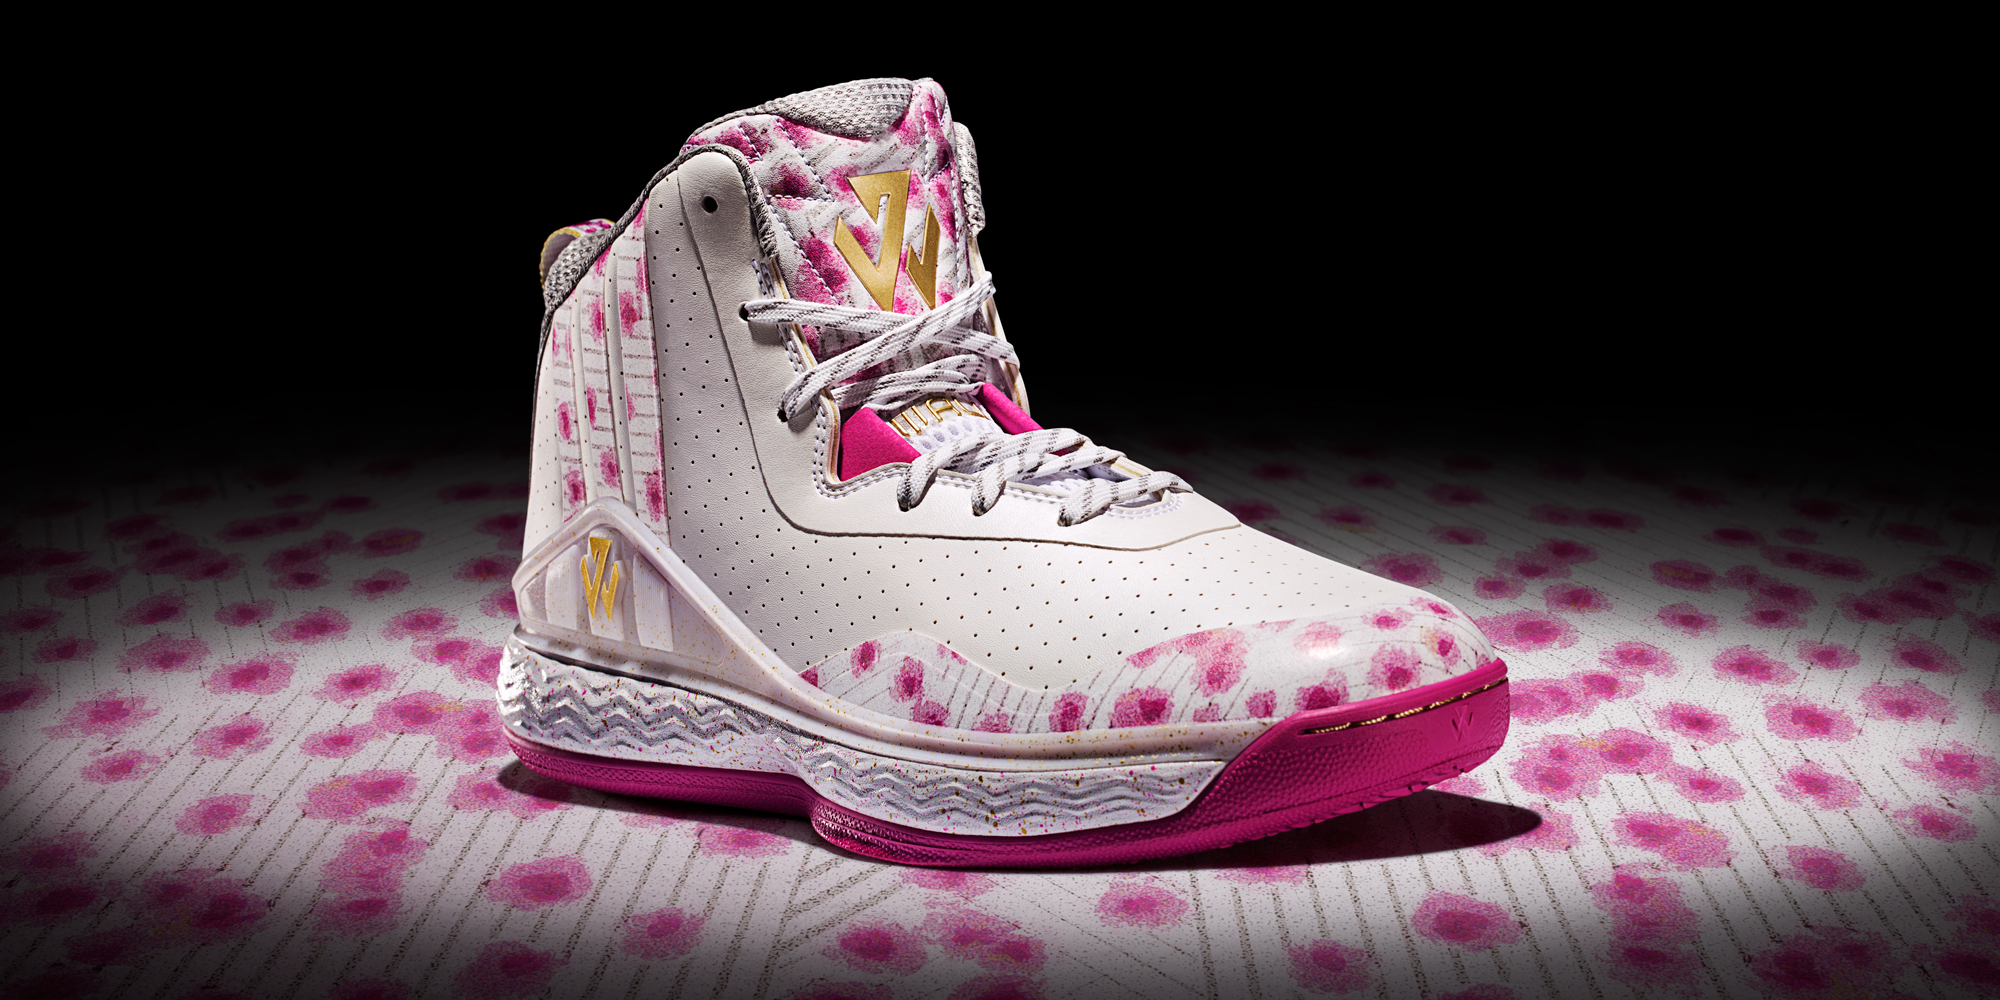 John Wall Basketball Shoes